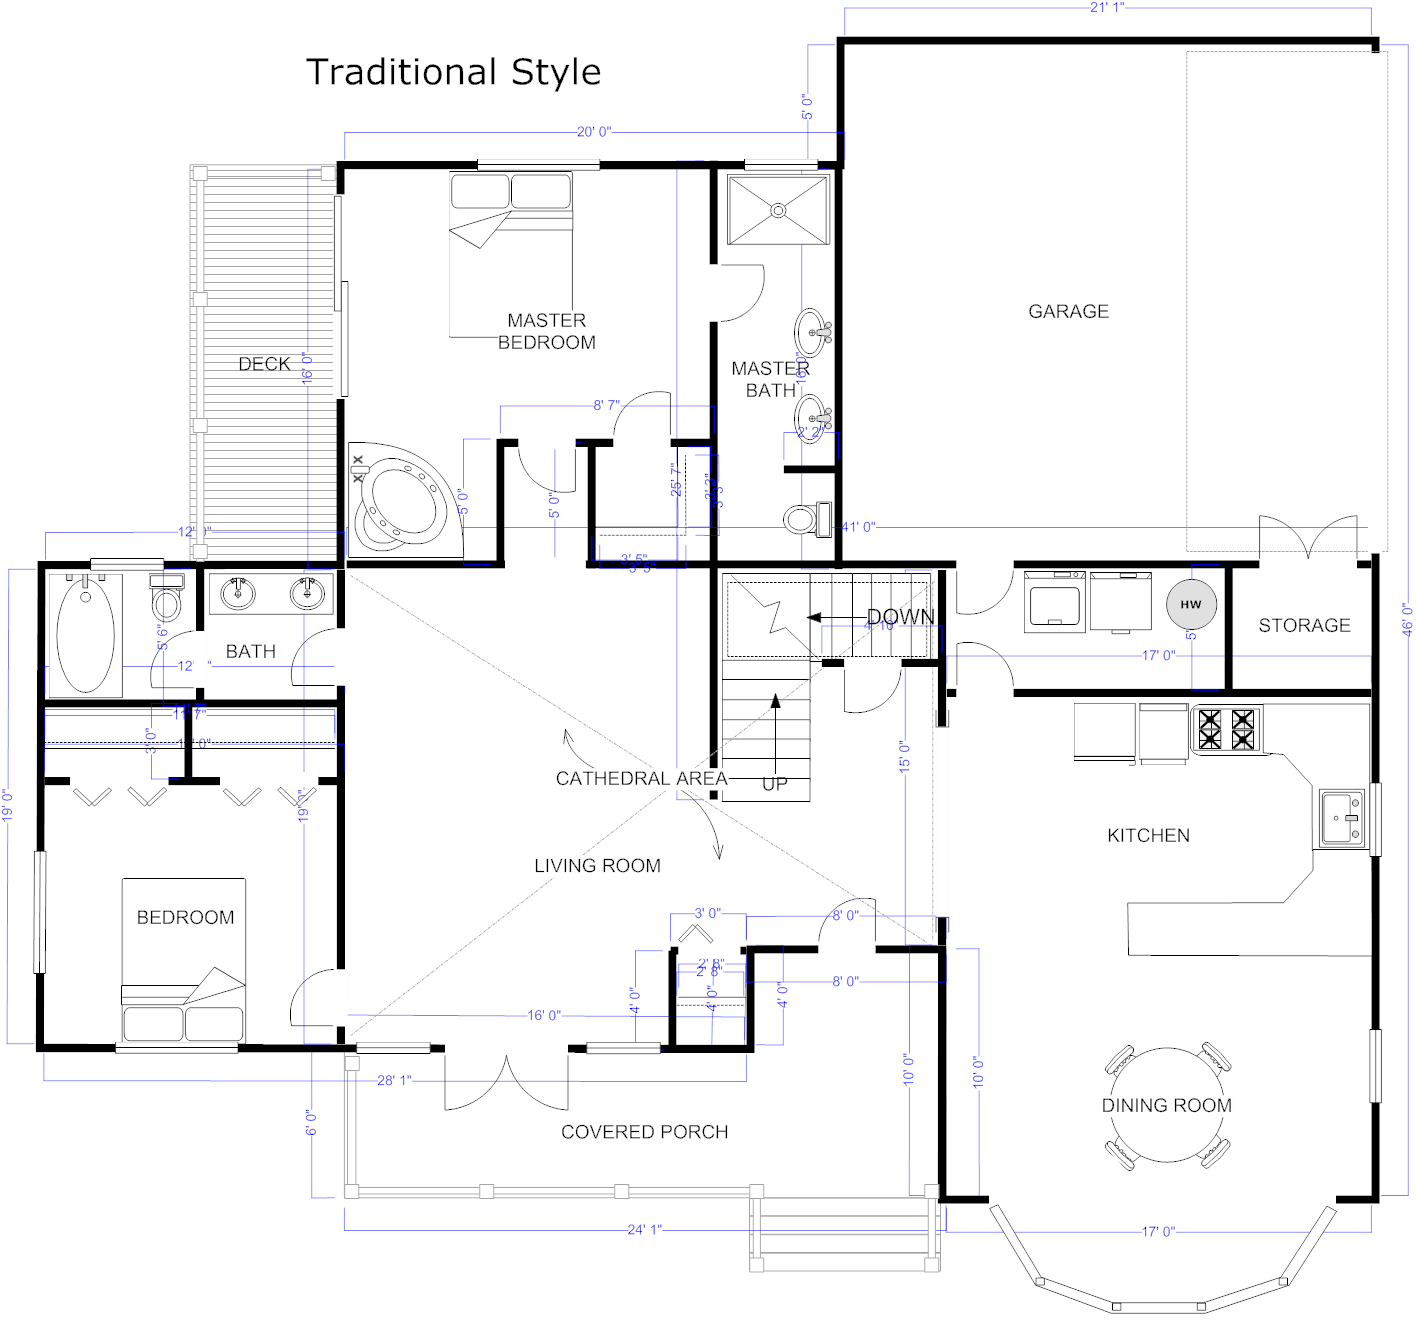 House Architecture Drawing architecture software | free download & online app